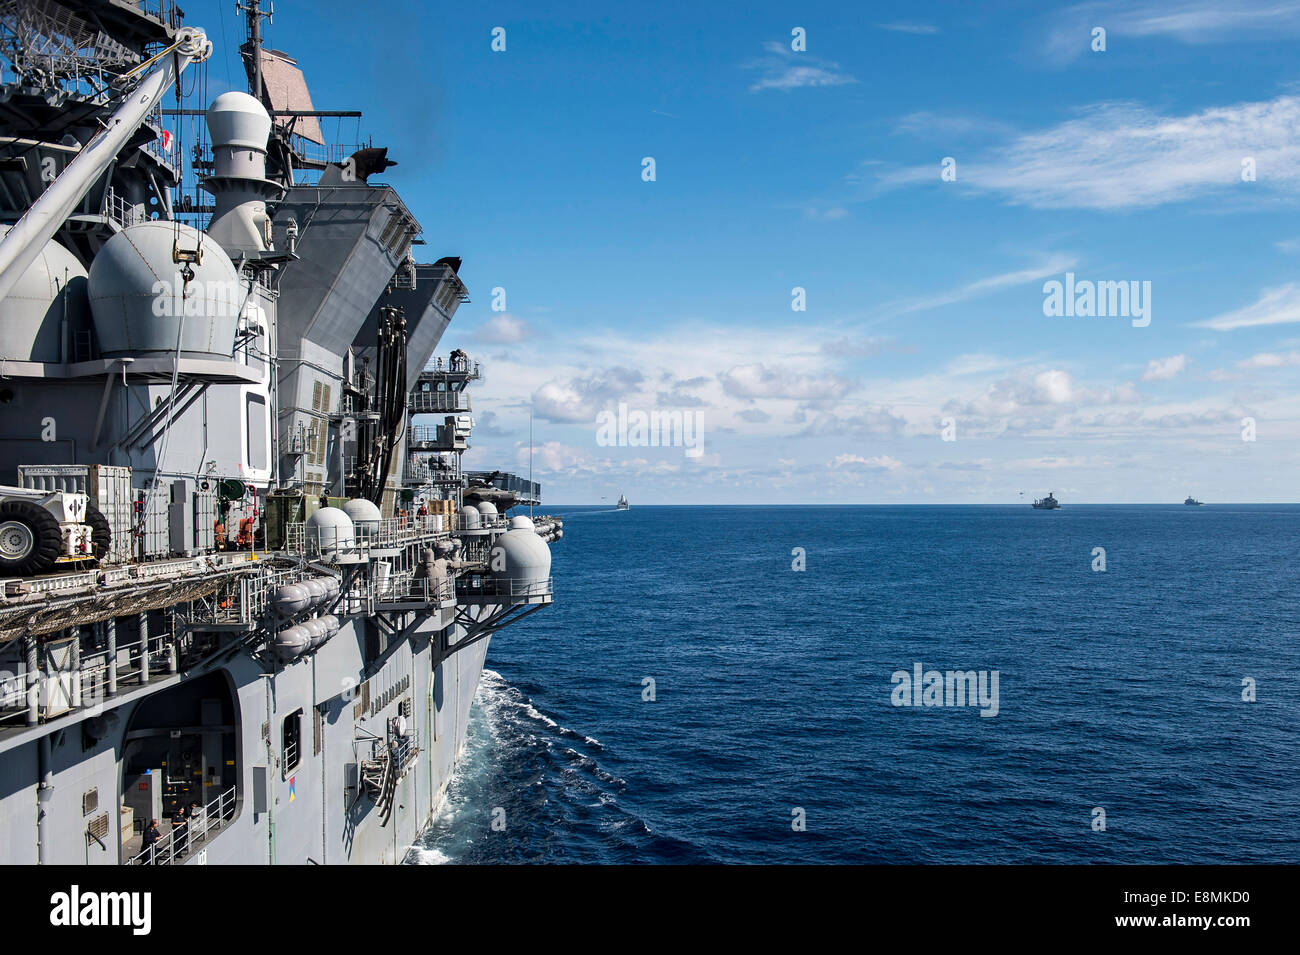 South China Sea, August 24, 2014 - The amphibious transport dock ship USS San Diego (LPD 22), the Military Sealift - Stock Image